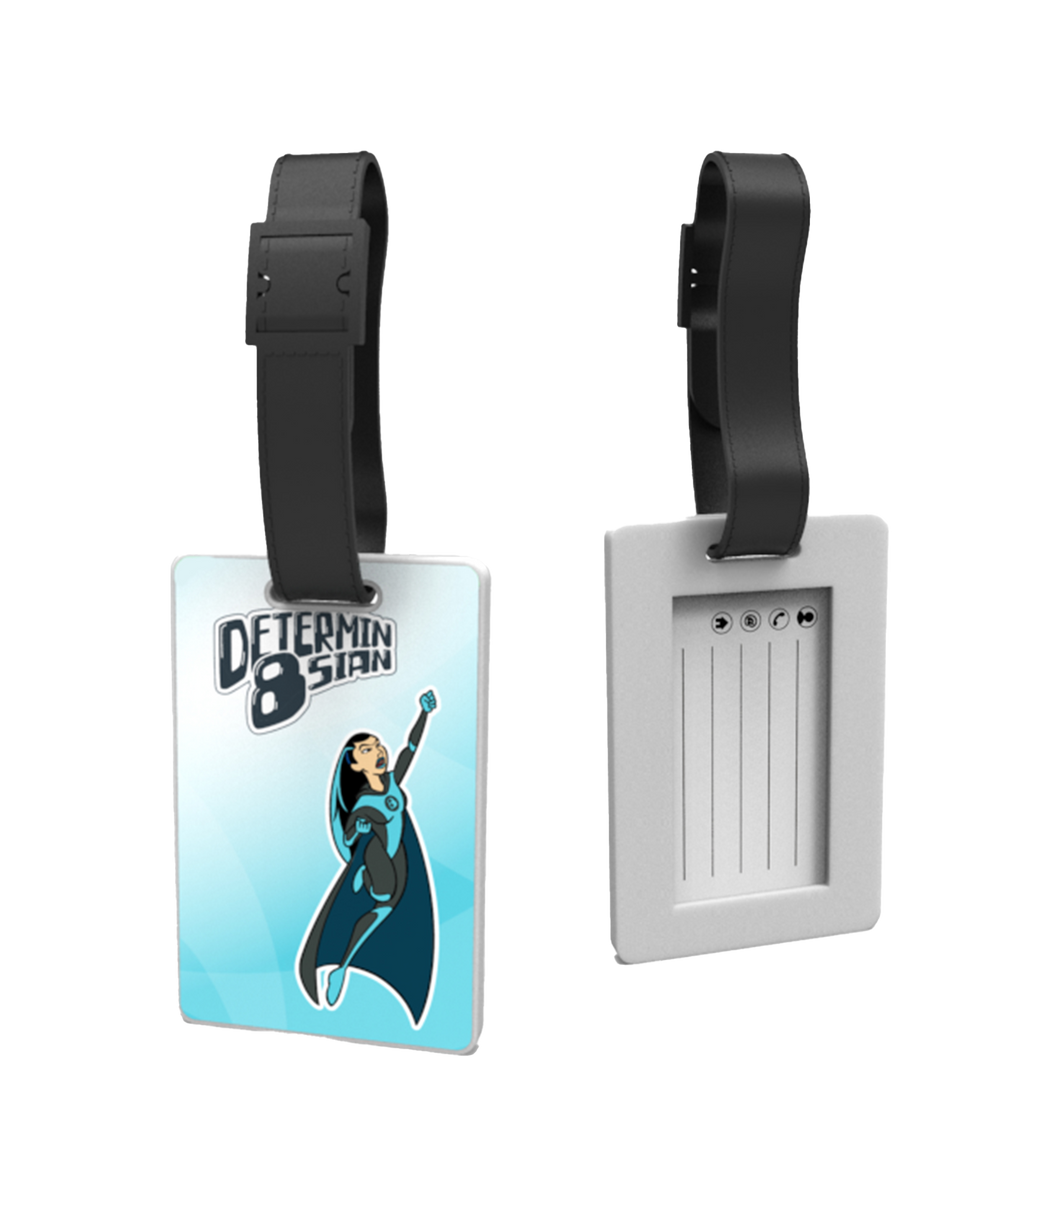 Determin8sian Luggage Tag